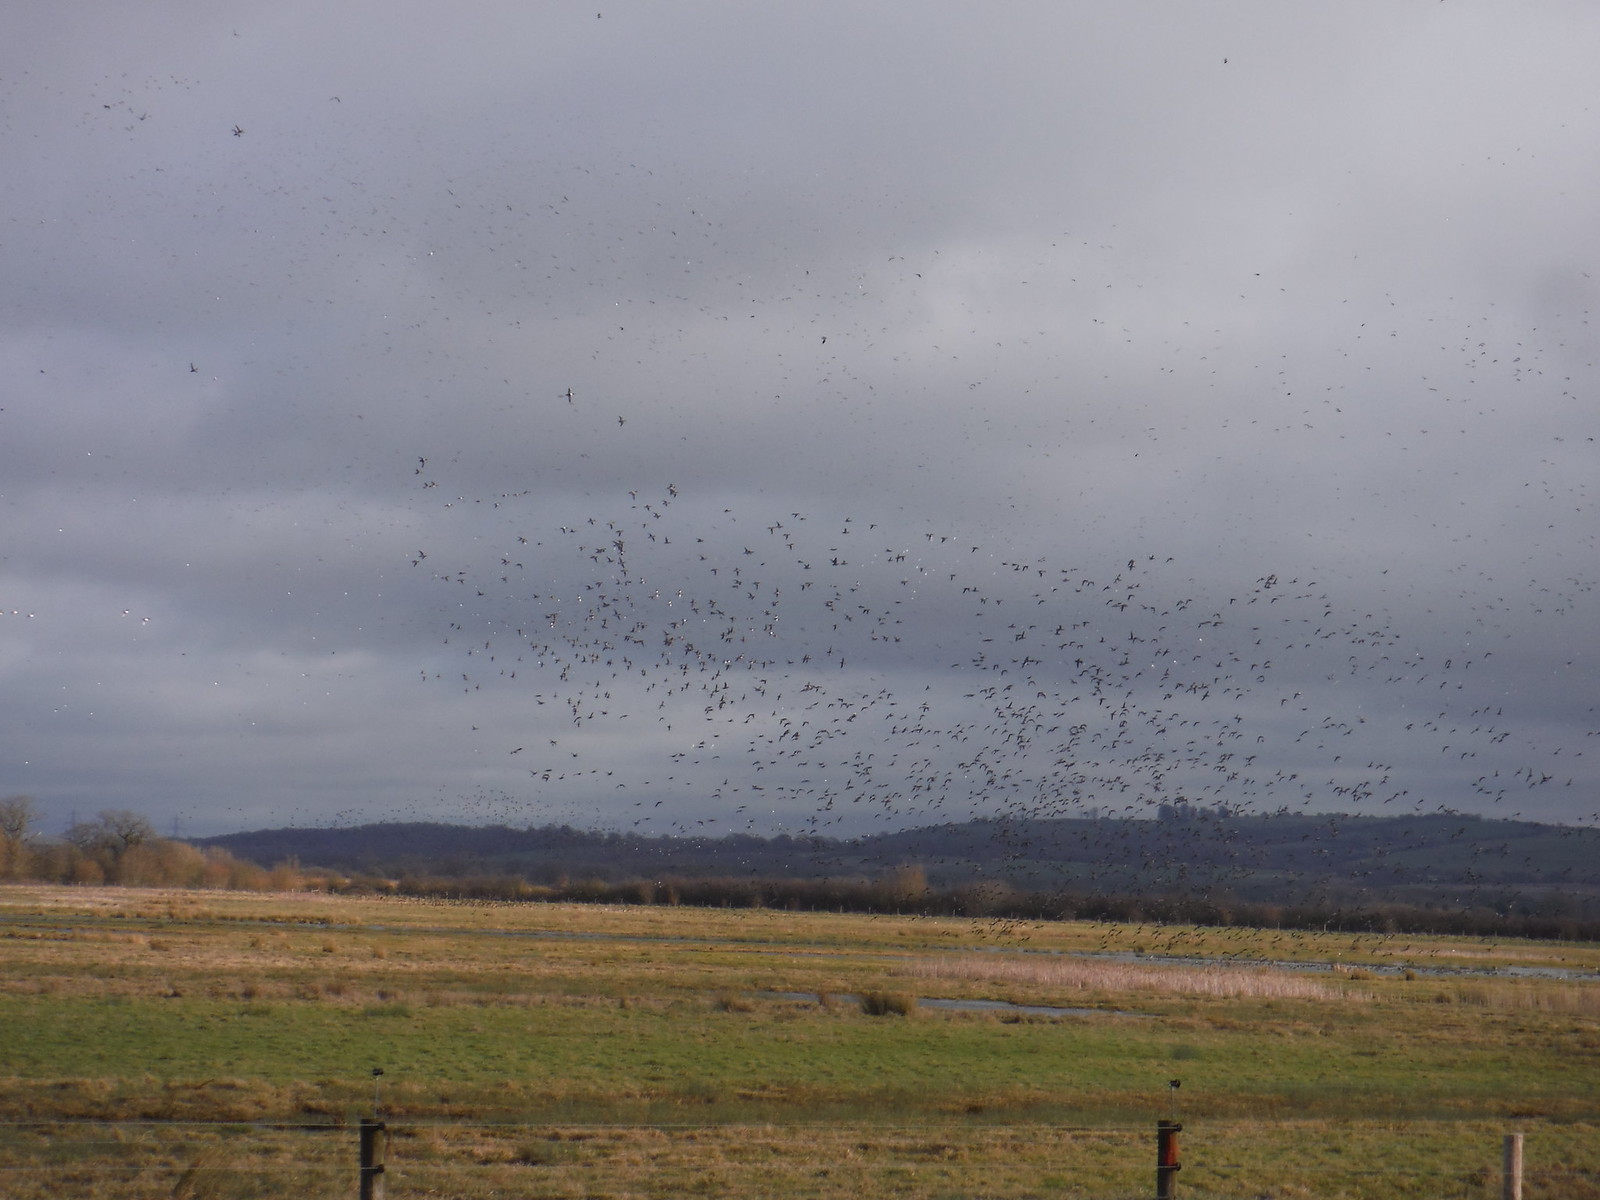 Starlings and Lapwings Murmuration, Otmoor RSPB Reserve